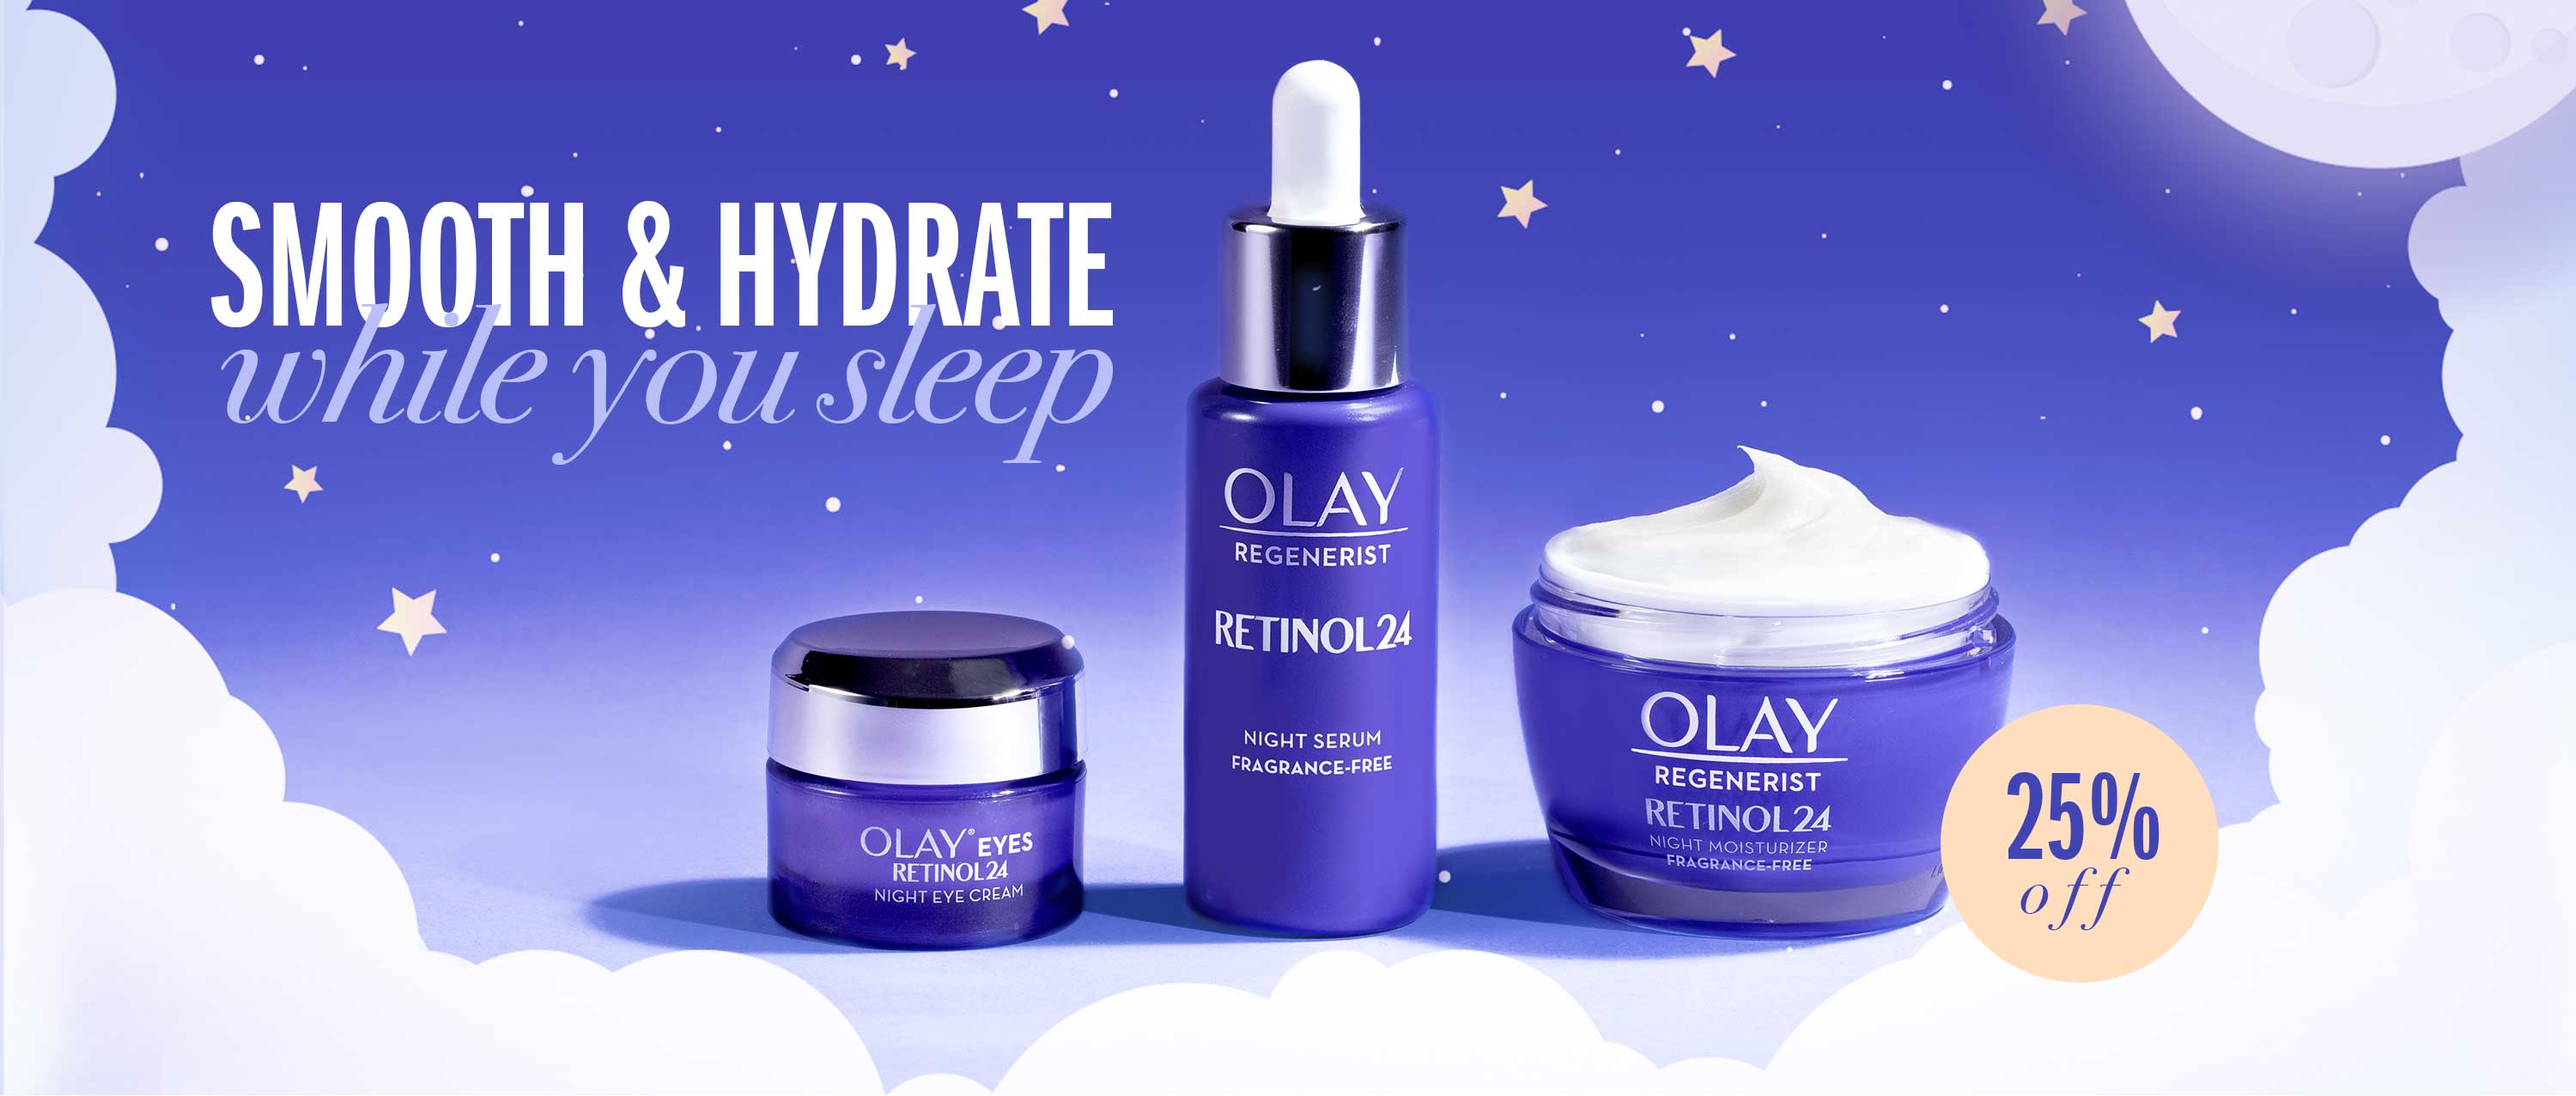 Smooth & hydrate while you sleep. Brighter smoother skin overnight with Olay Regenerist Retinol24 MAX.